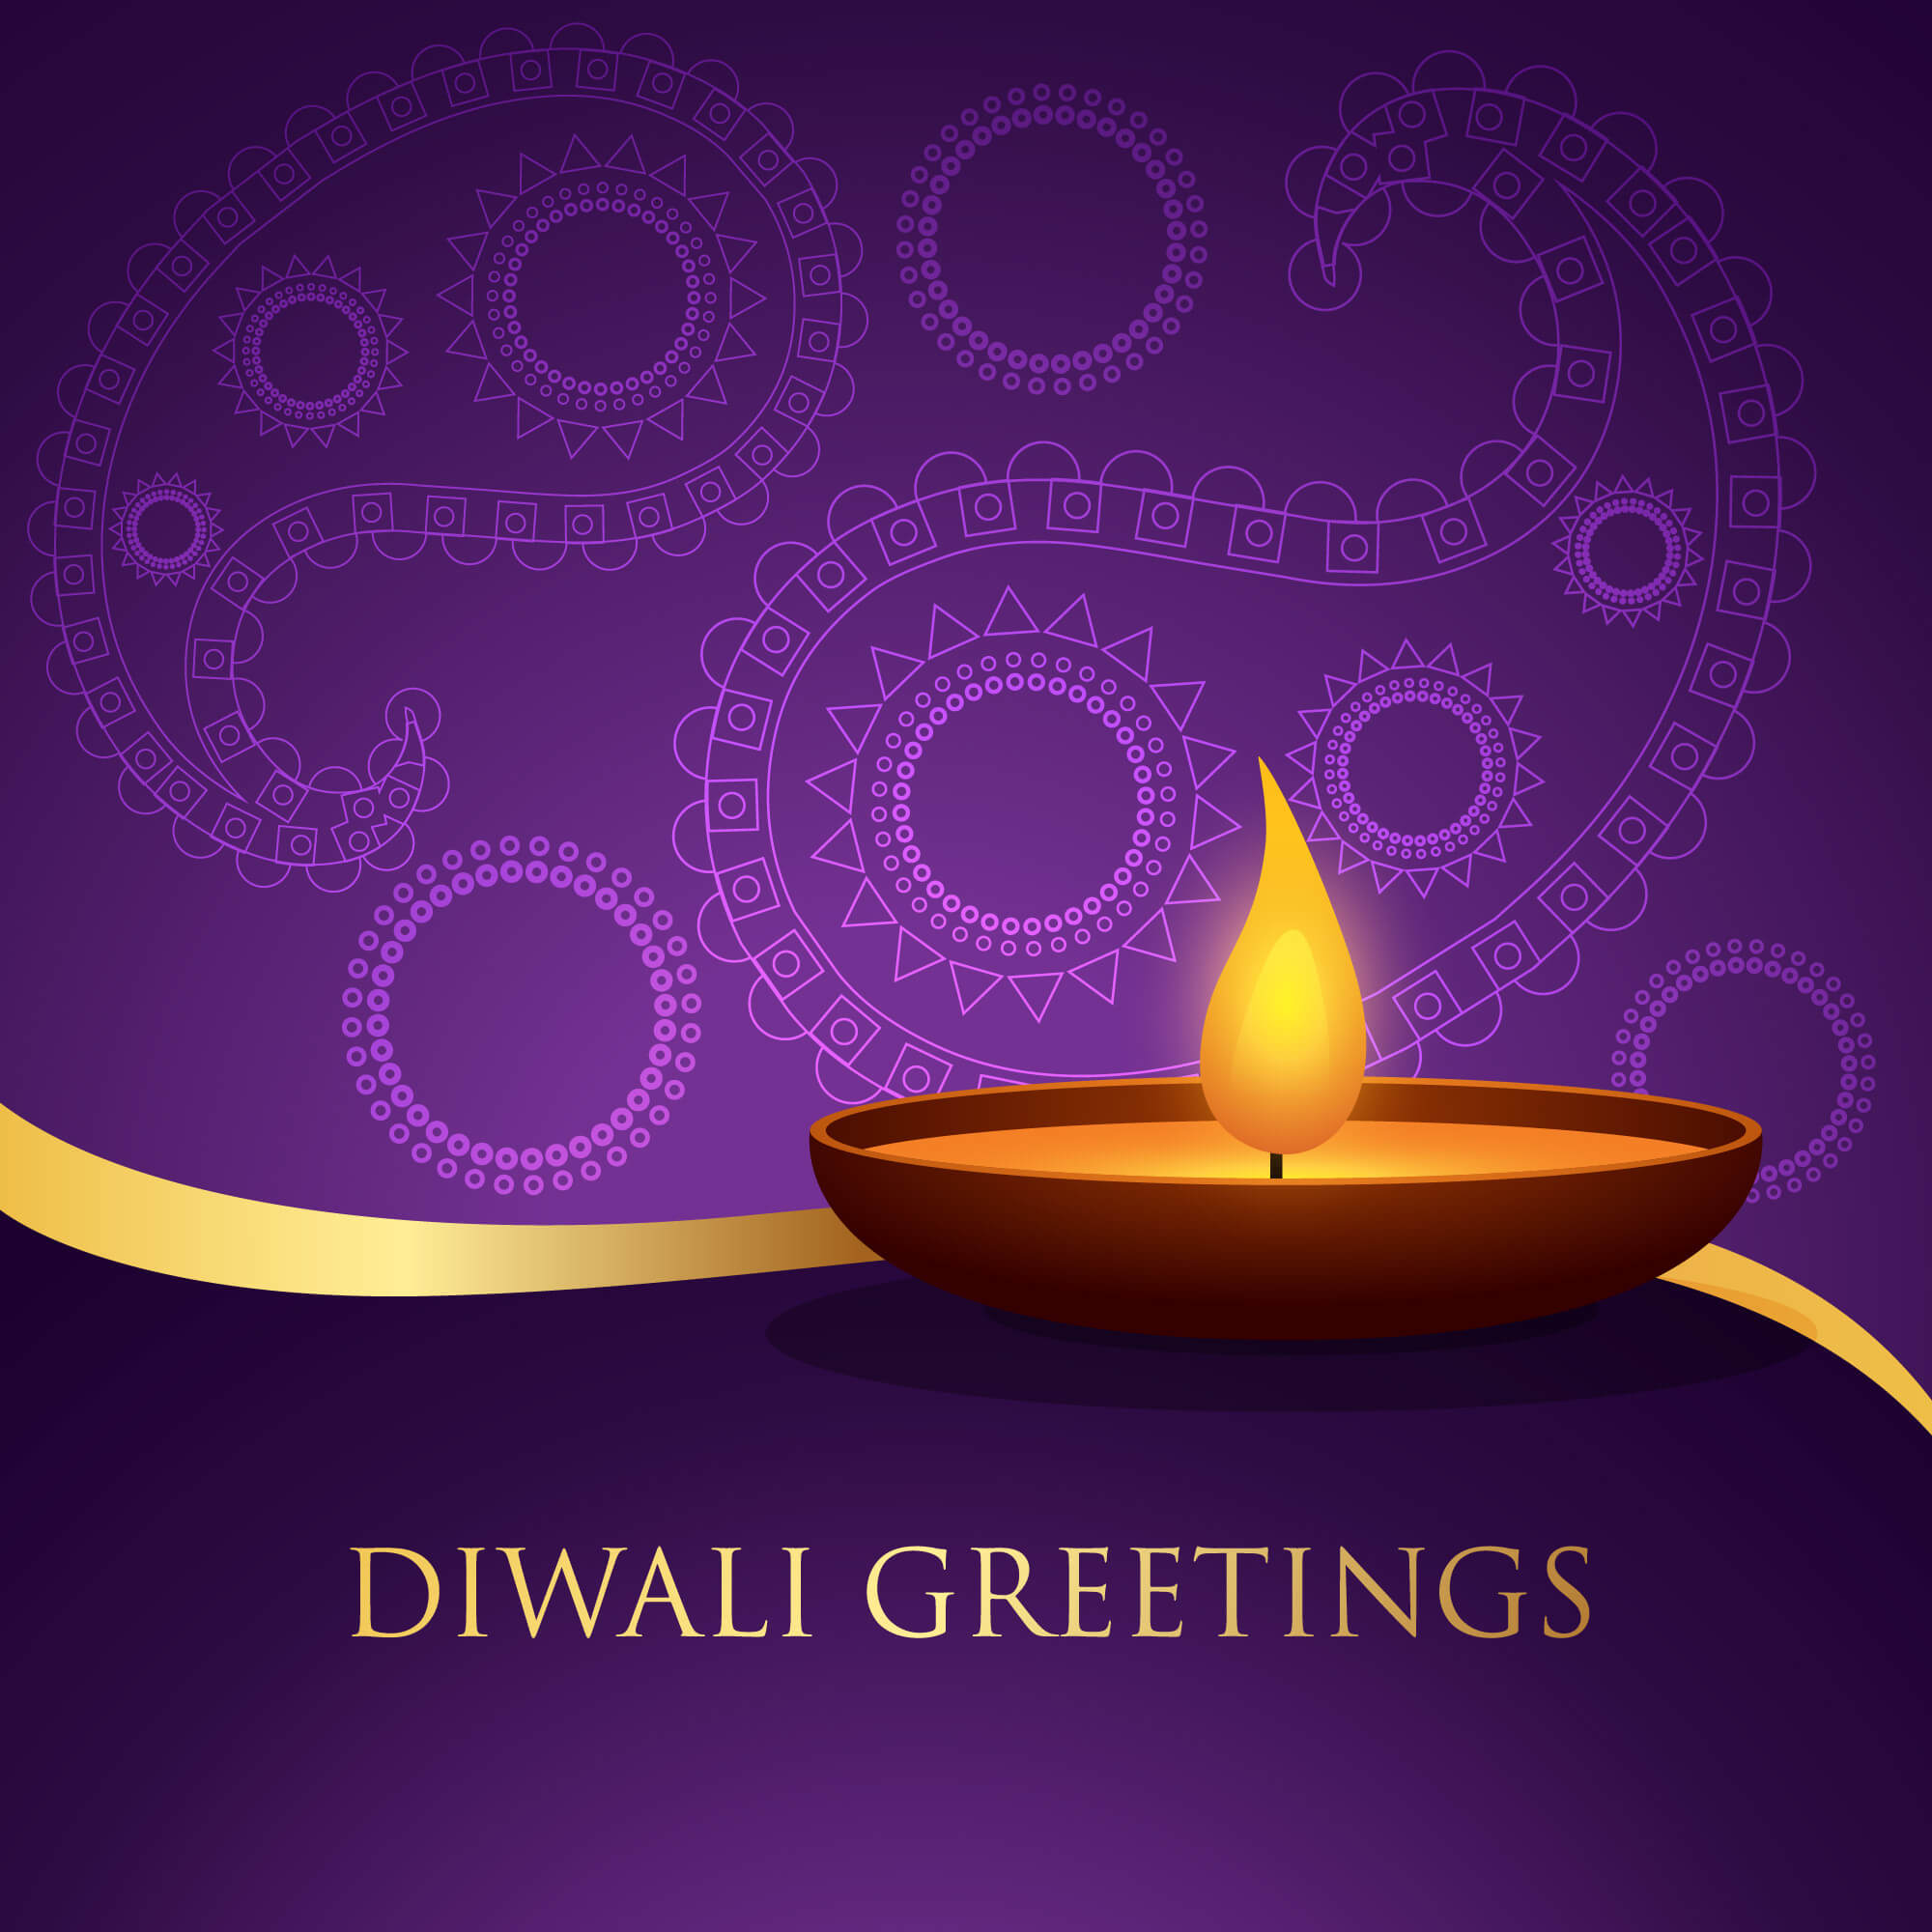 Happy Diwali Greetings Lamp Hd Wallpaper